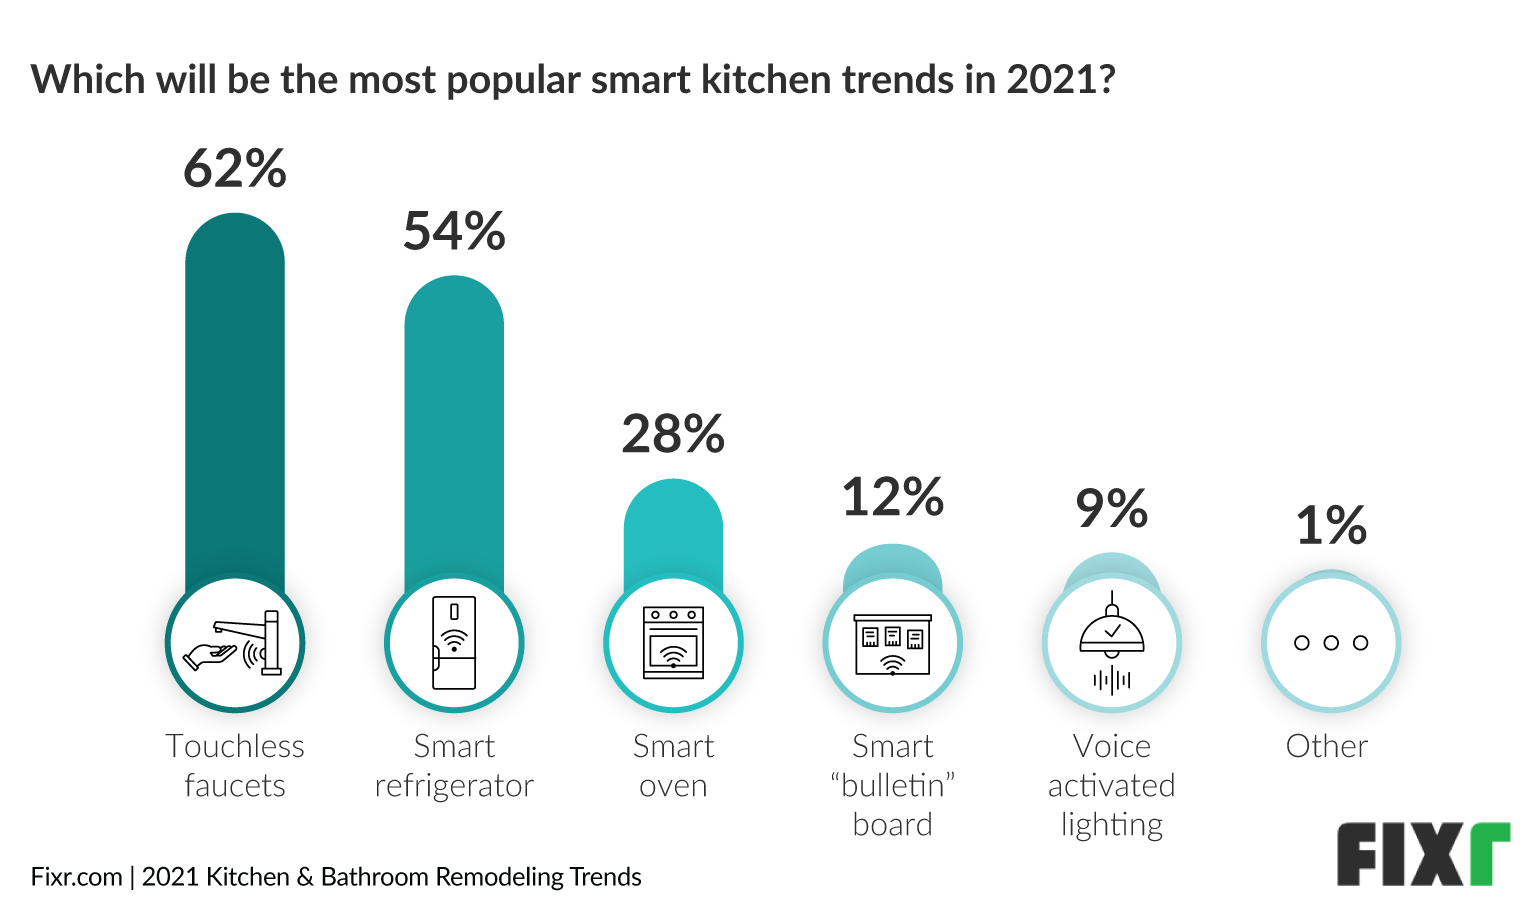 Kitchen Trends 2021 - Smart Kitchen Trends, Touches Faucets and Smart Refrigerators